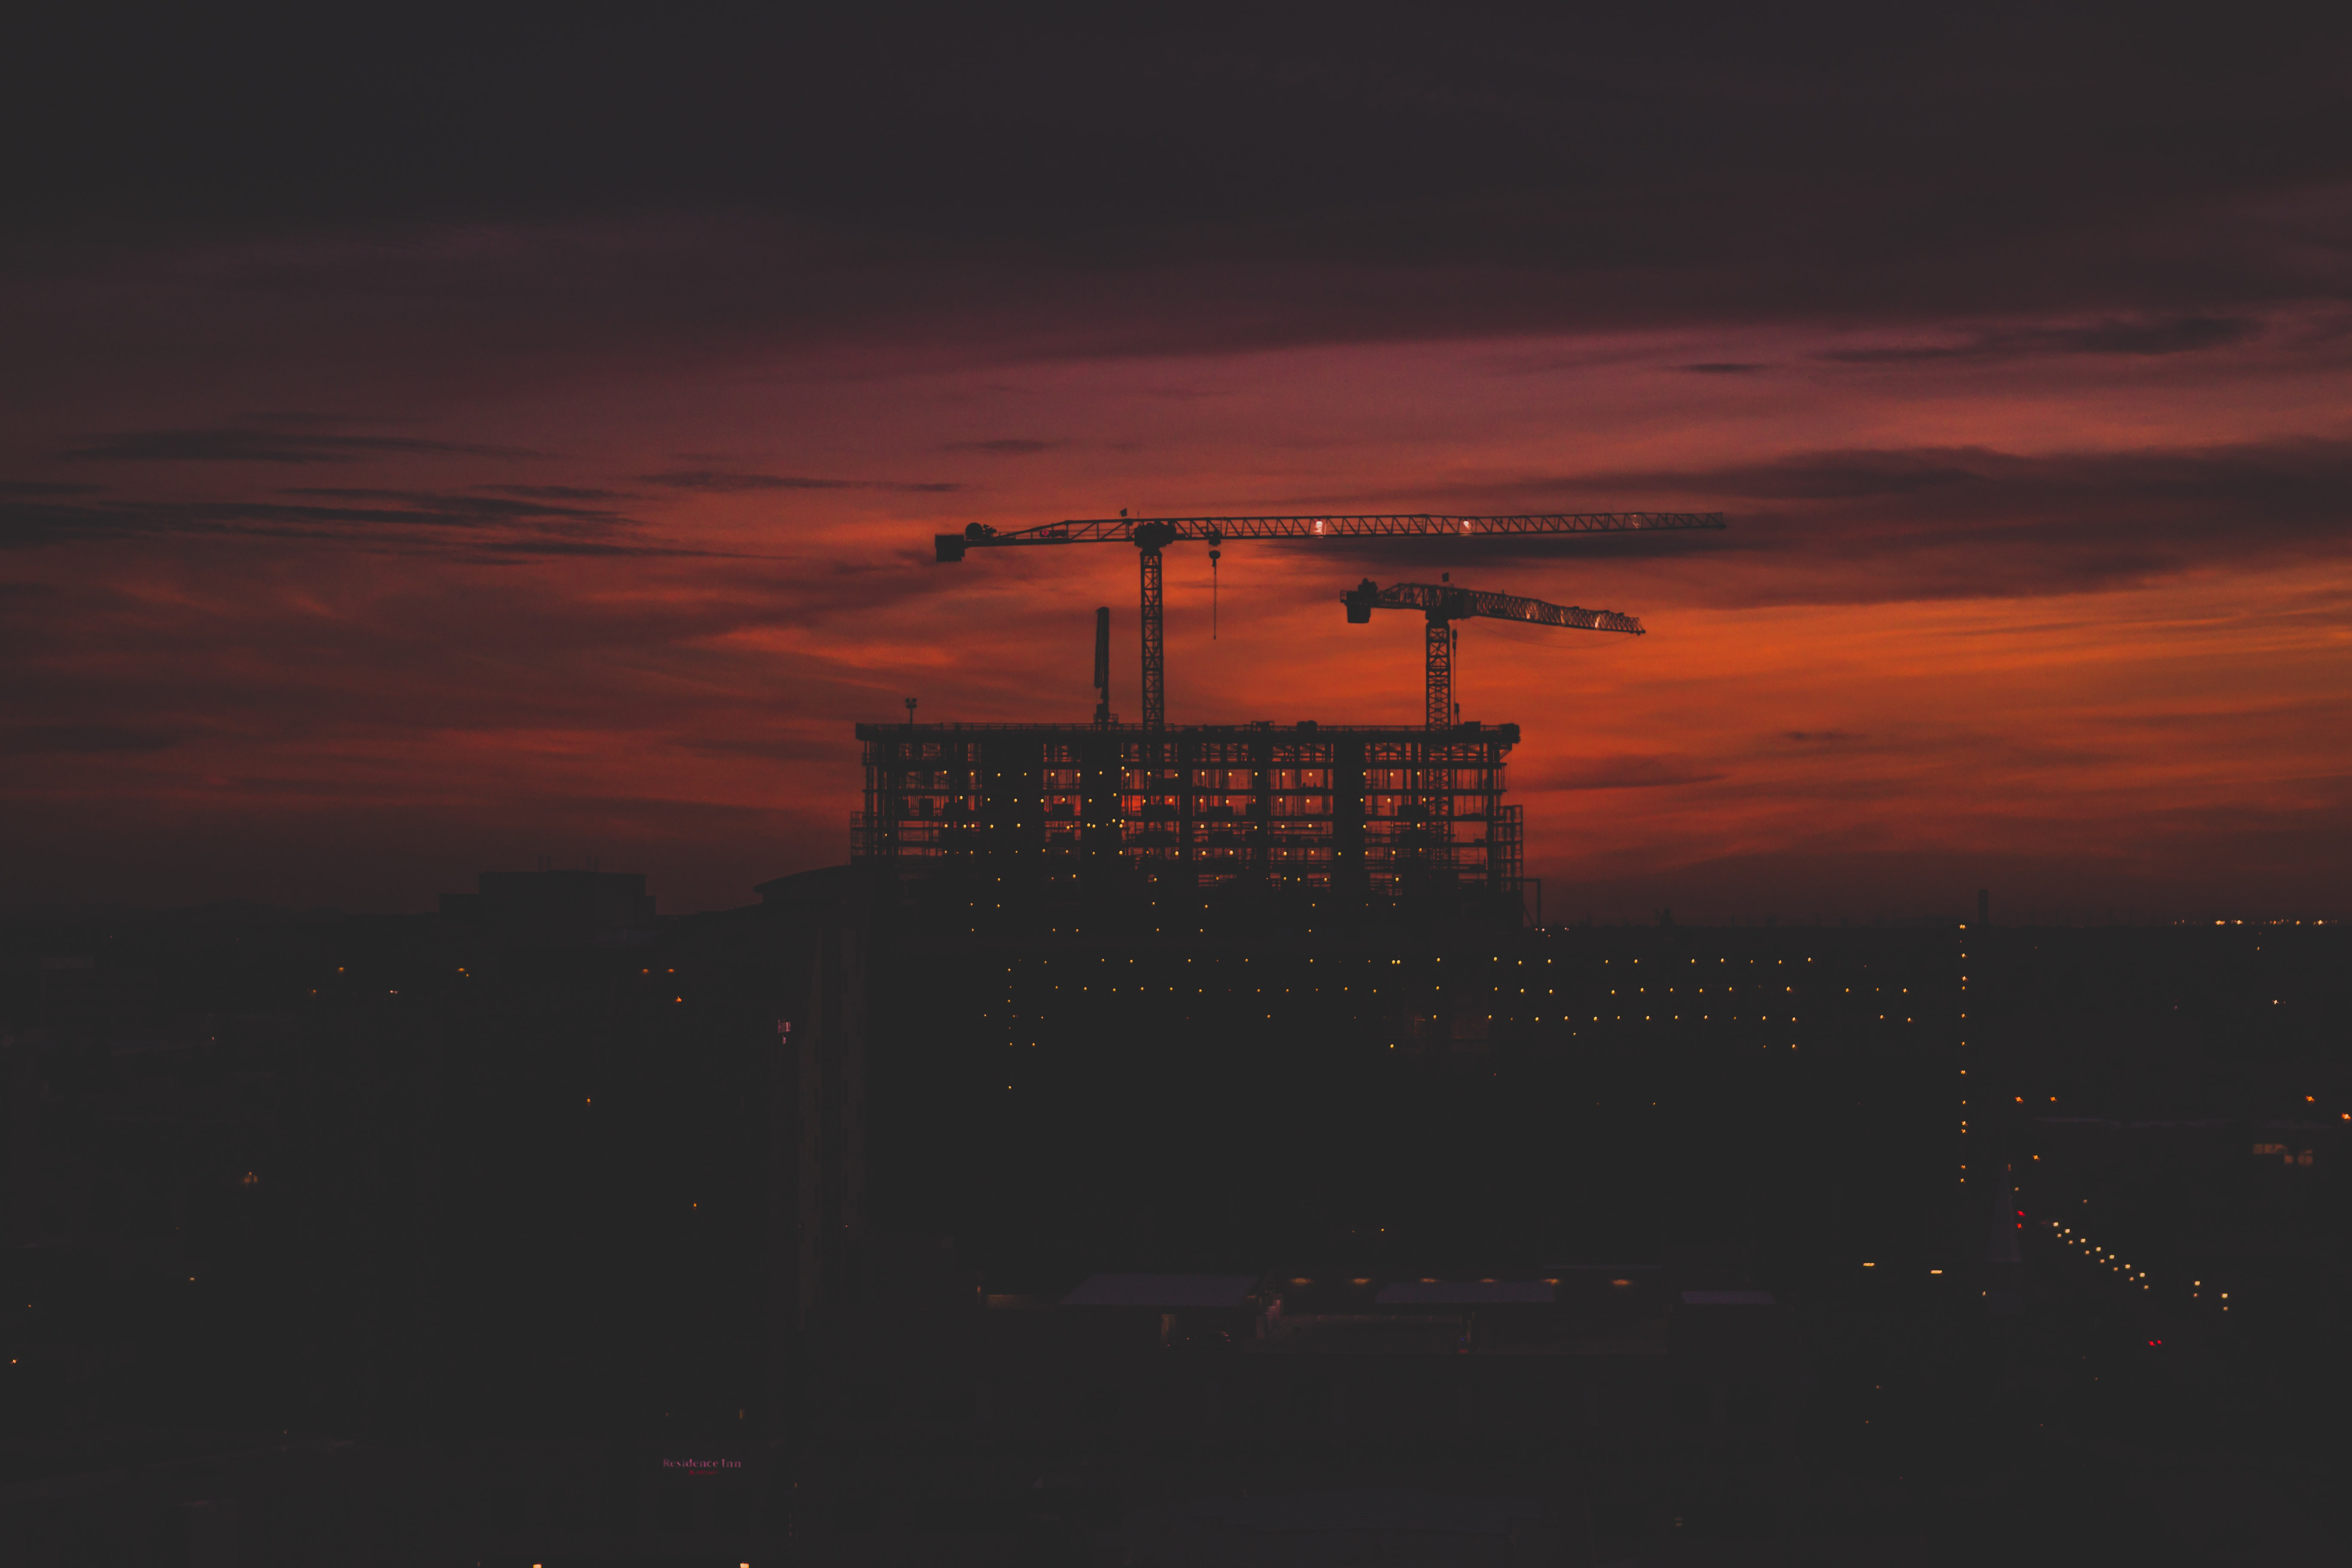 silhouette of crane at top of the building